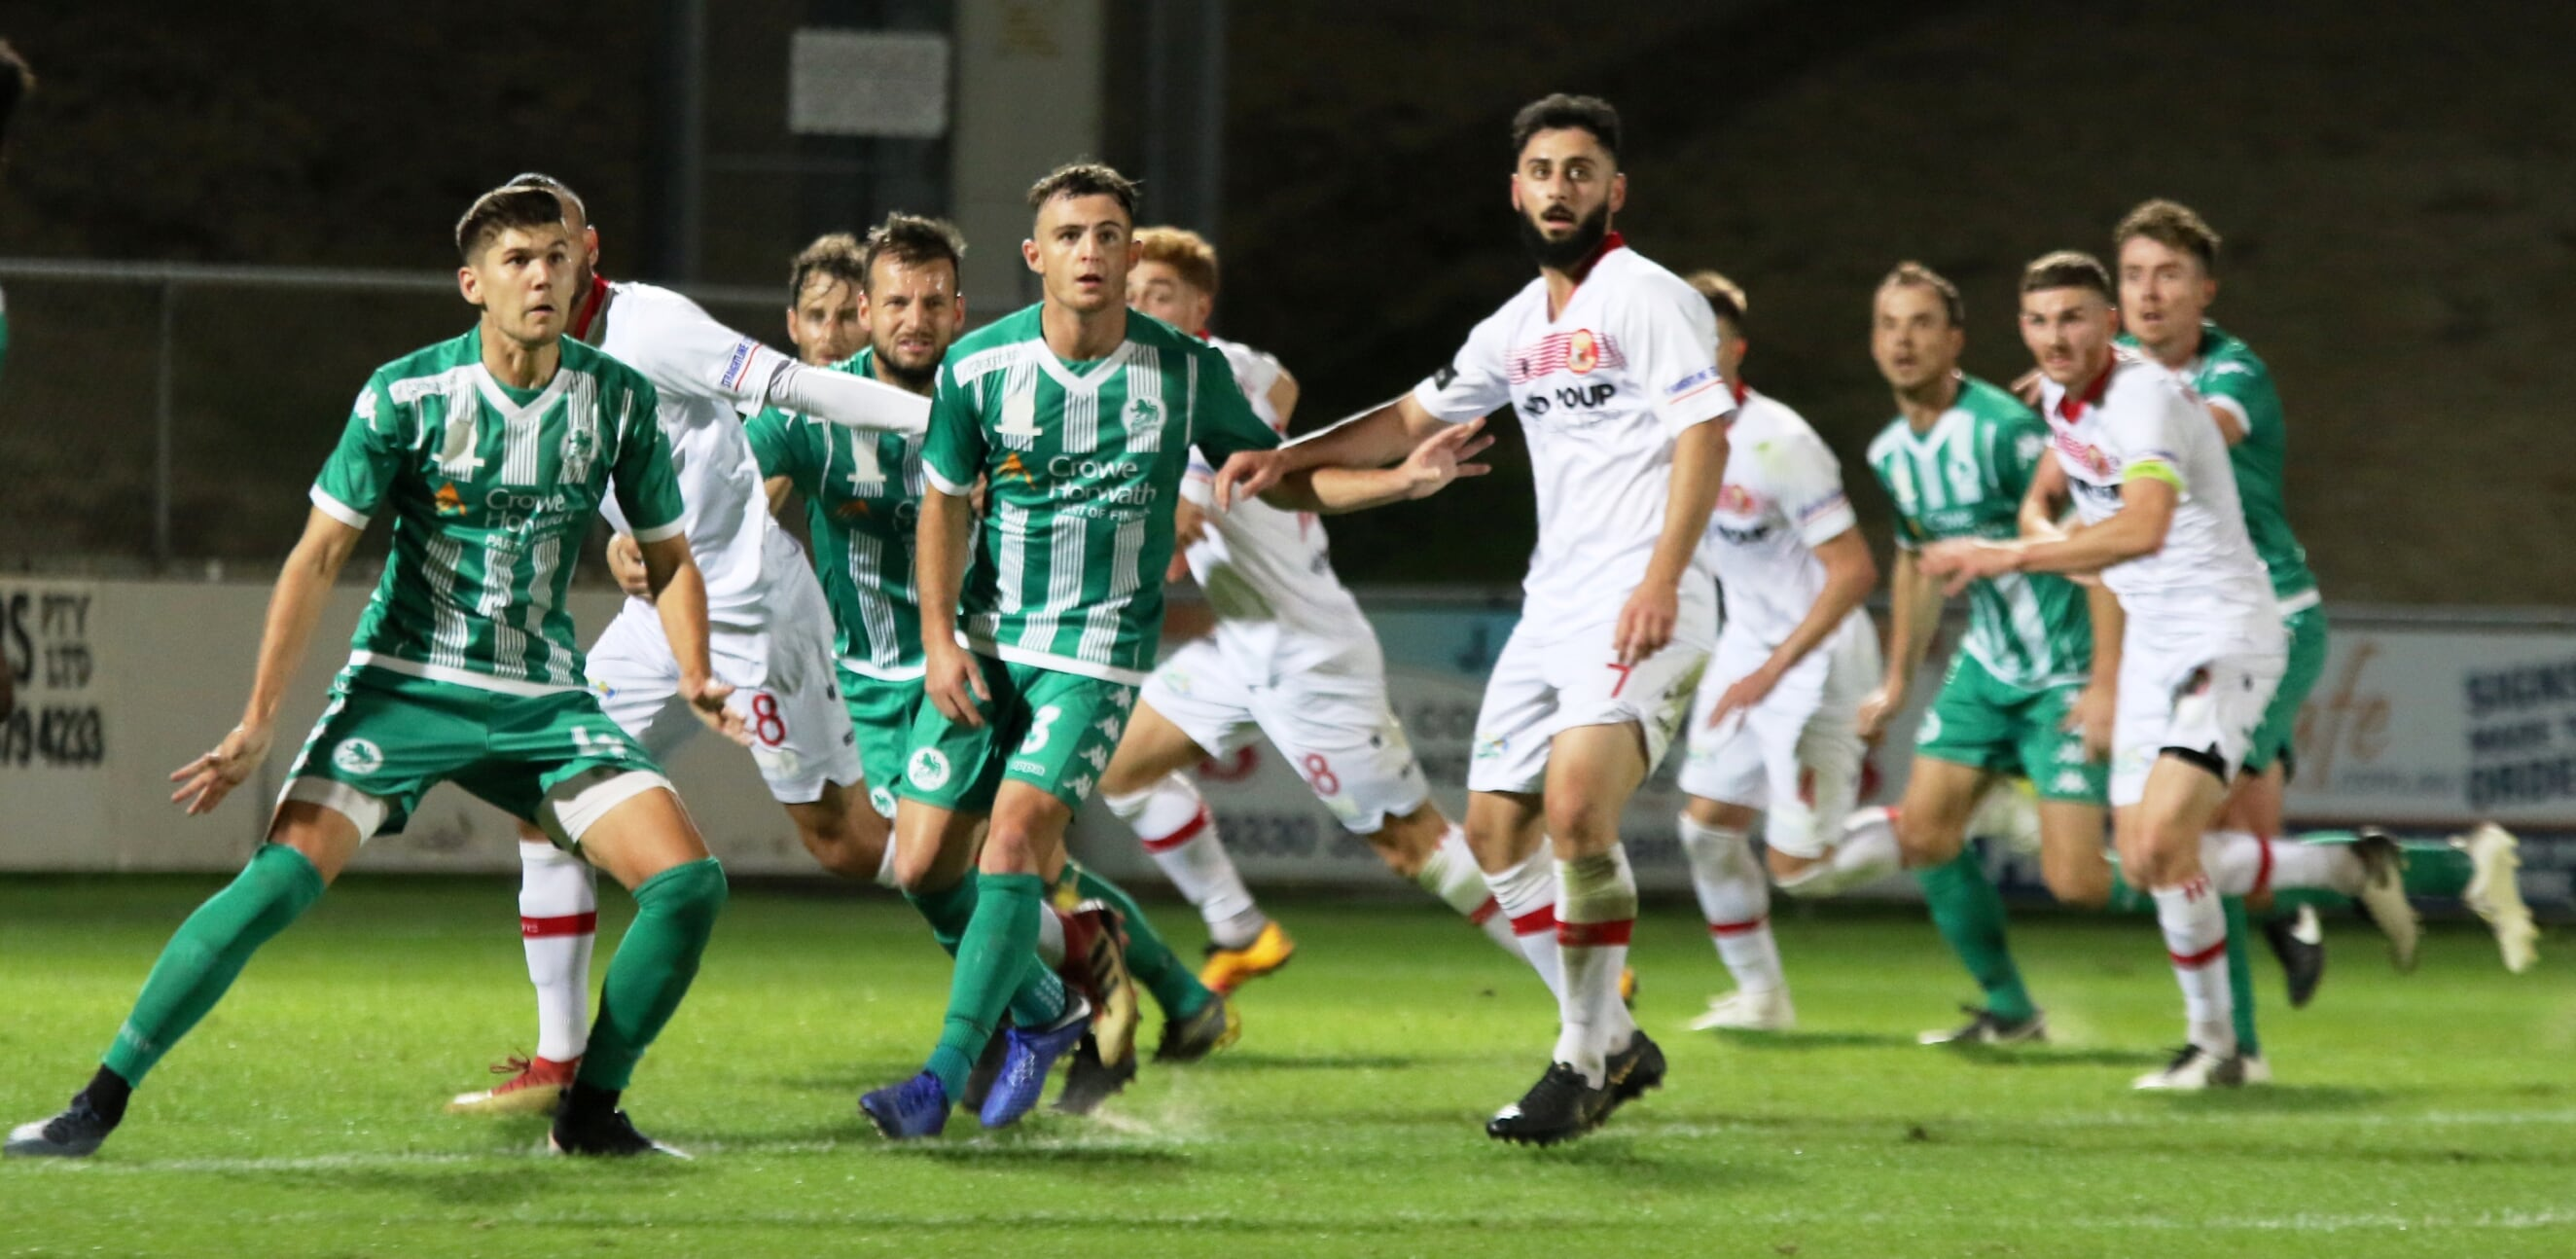 NPL Round 11 Review: Plenty of positives for Hume City, despite 1-0 loss to Green Gully